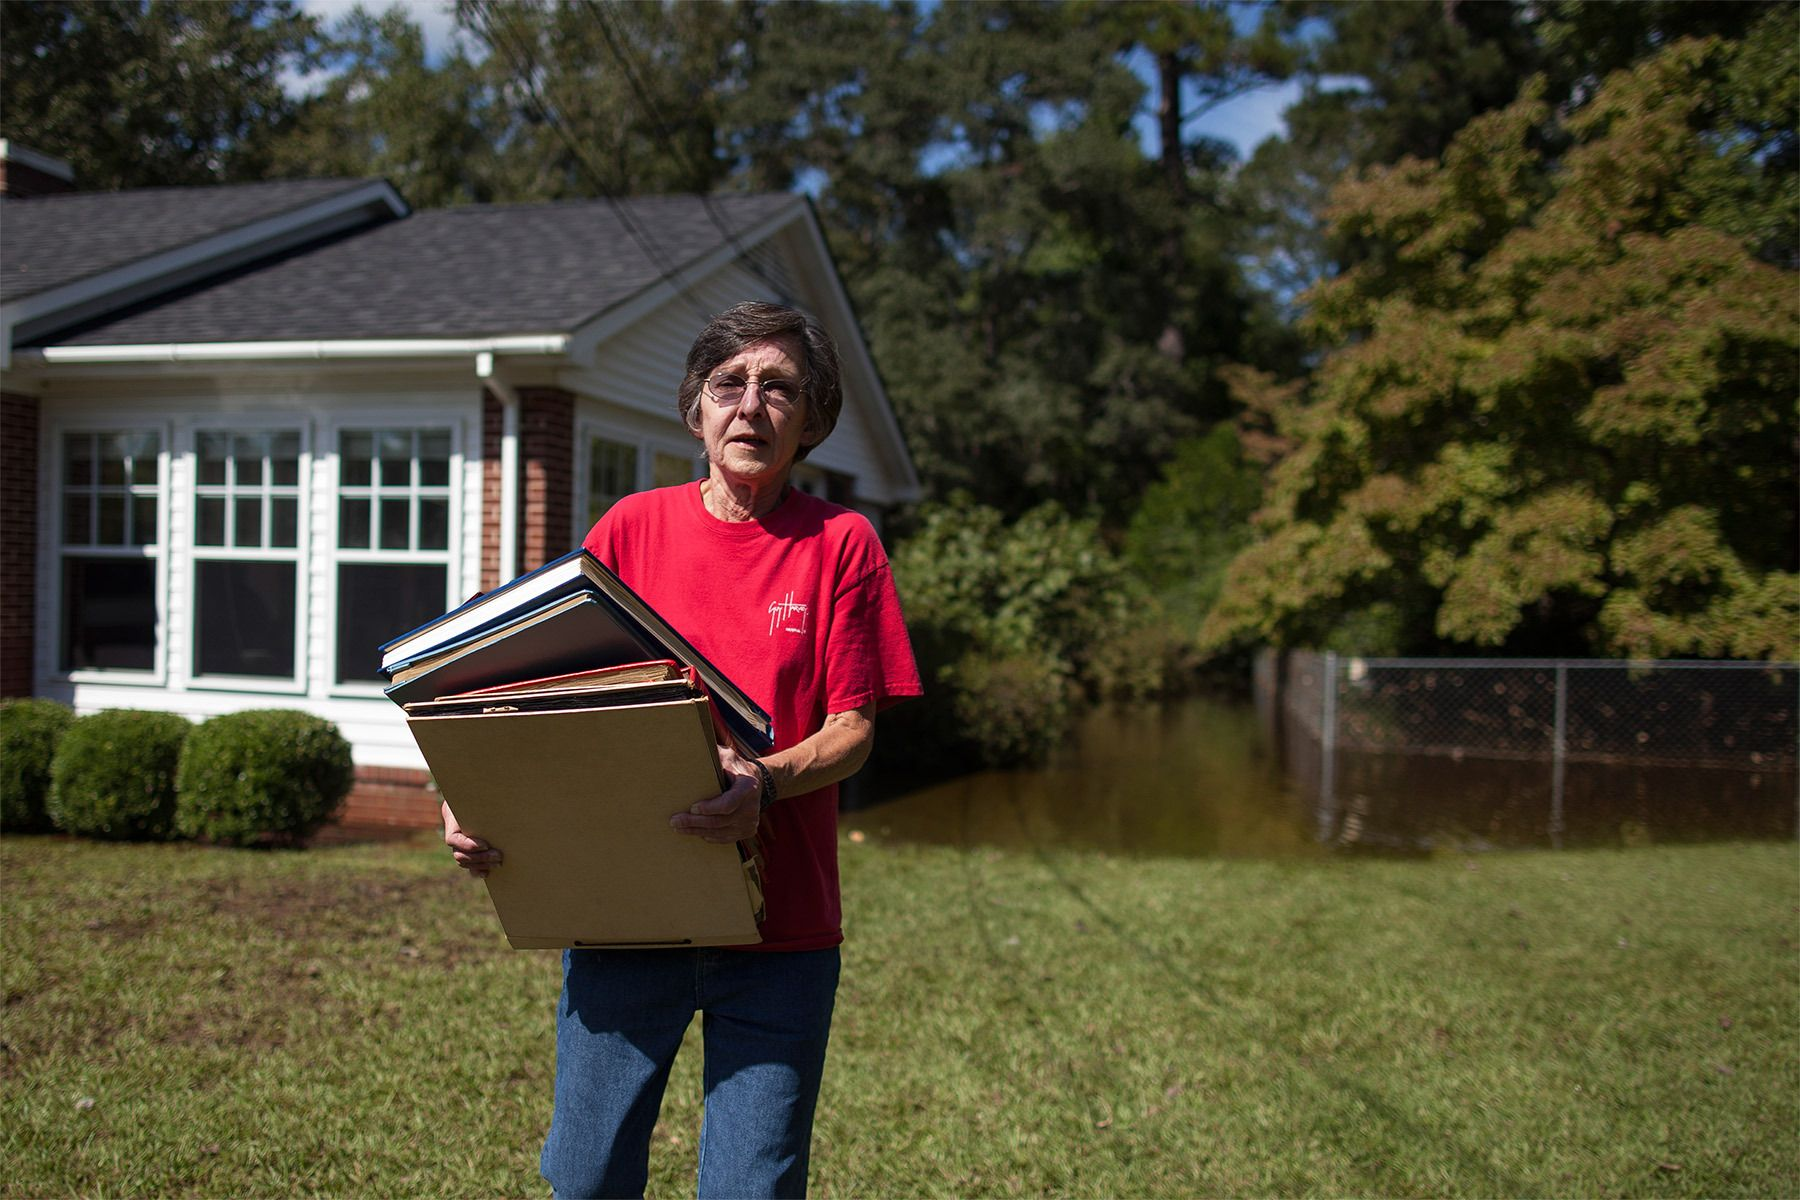 Deborah Hanna of Kingstree rescues old photographs from her mother's flooded home on Singleton Avenue in Kingstree, South Carolina October 8, 2015. The family was able to return to the home after evacuating on Sunday. Flooding from historic rainfall in South Carolina claimed two more lives on Wednesday, and the threat of further inundation from swollen rivers and vulnerable dams put already ravaged communities on edge.  REUTERS/Randall Hill